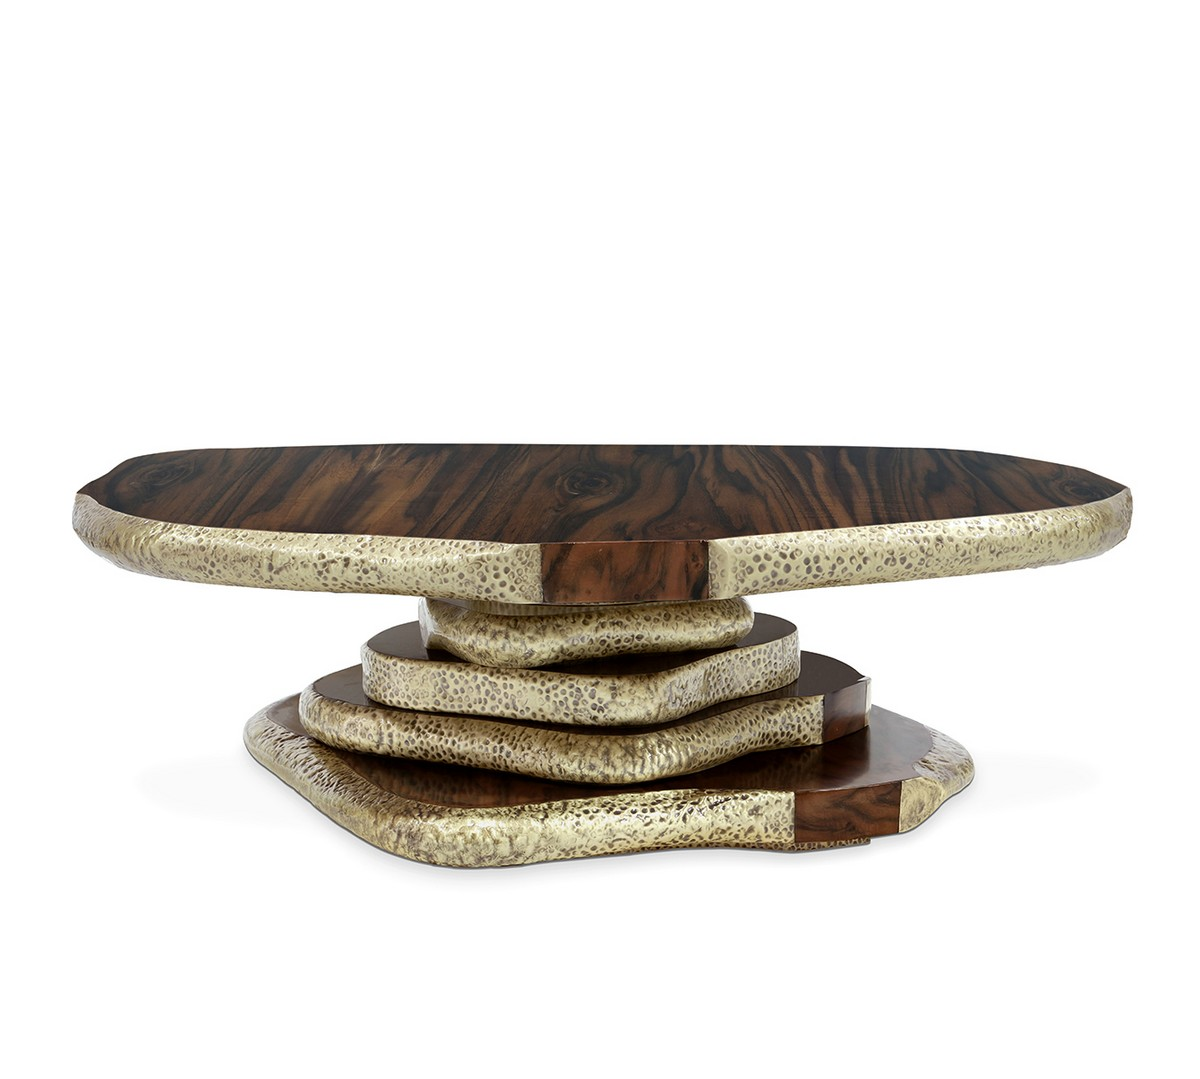 wooden center tables The Best Wooden Center Tables You Can Find latza 2